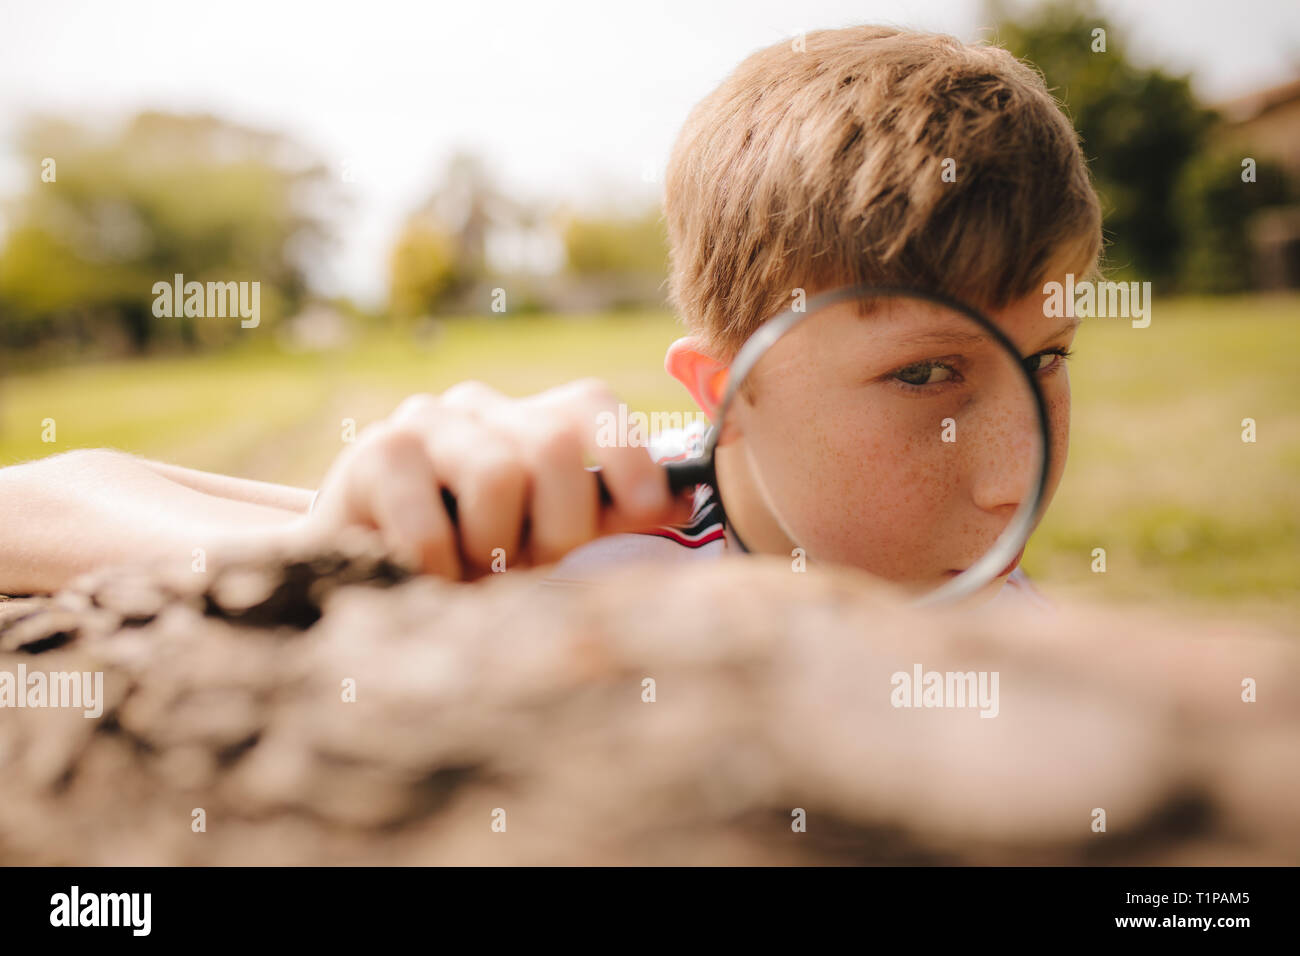 Boy looking through magnifying glass on a sunny day. Boy exploring with magnifying glass. - Stock Image